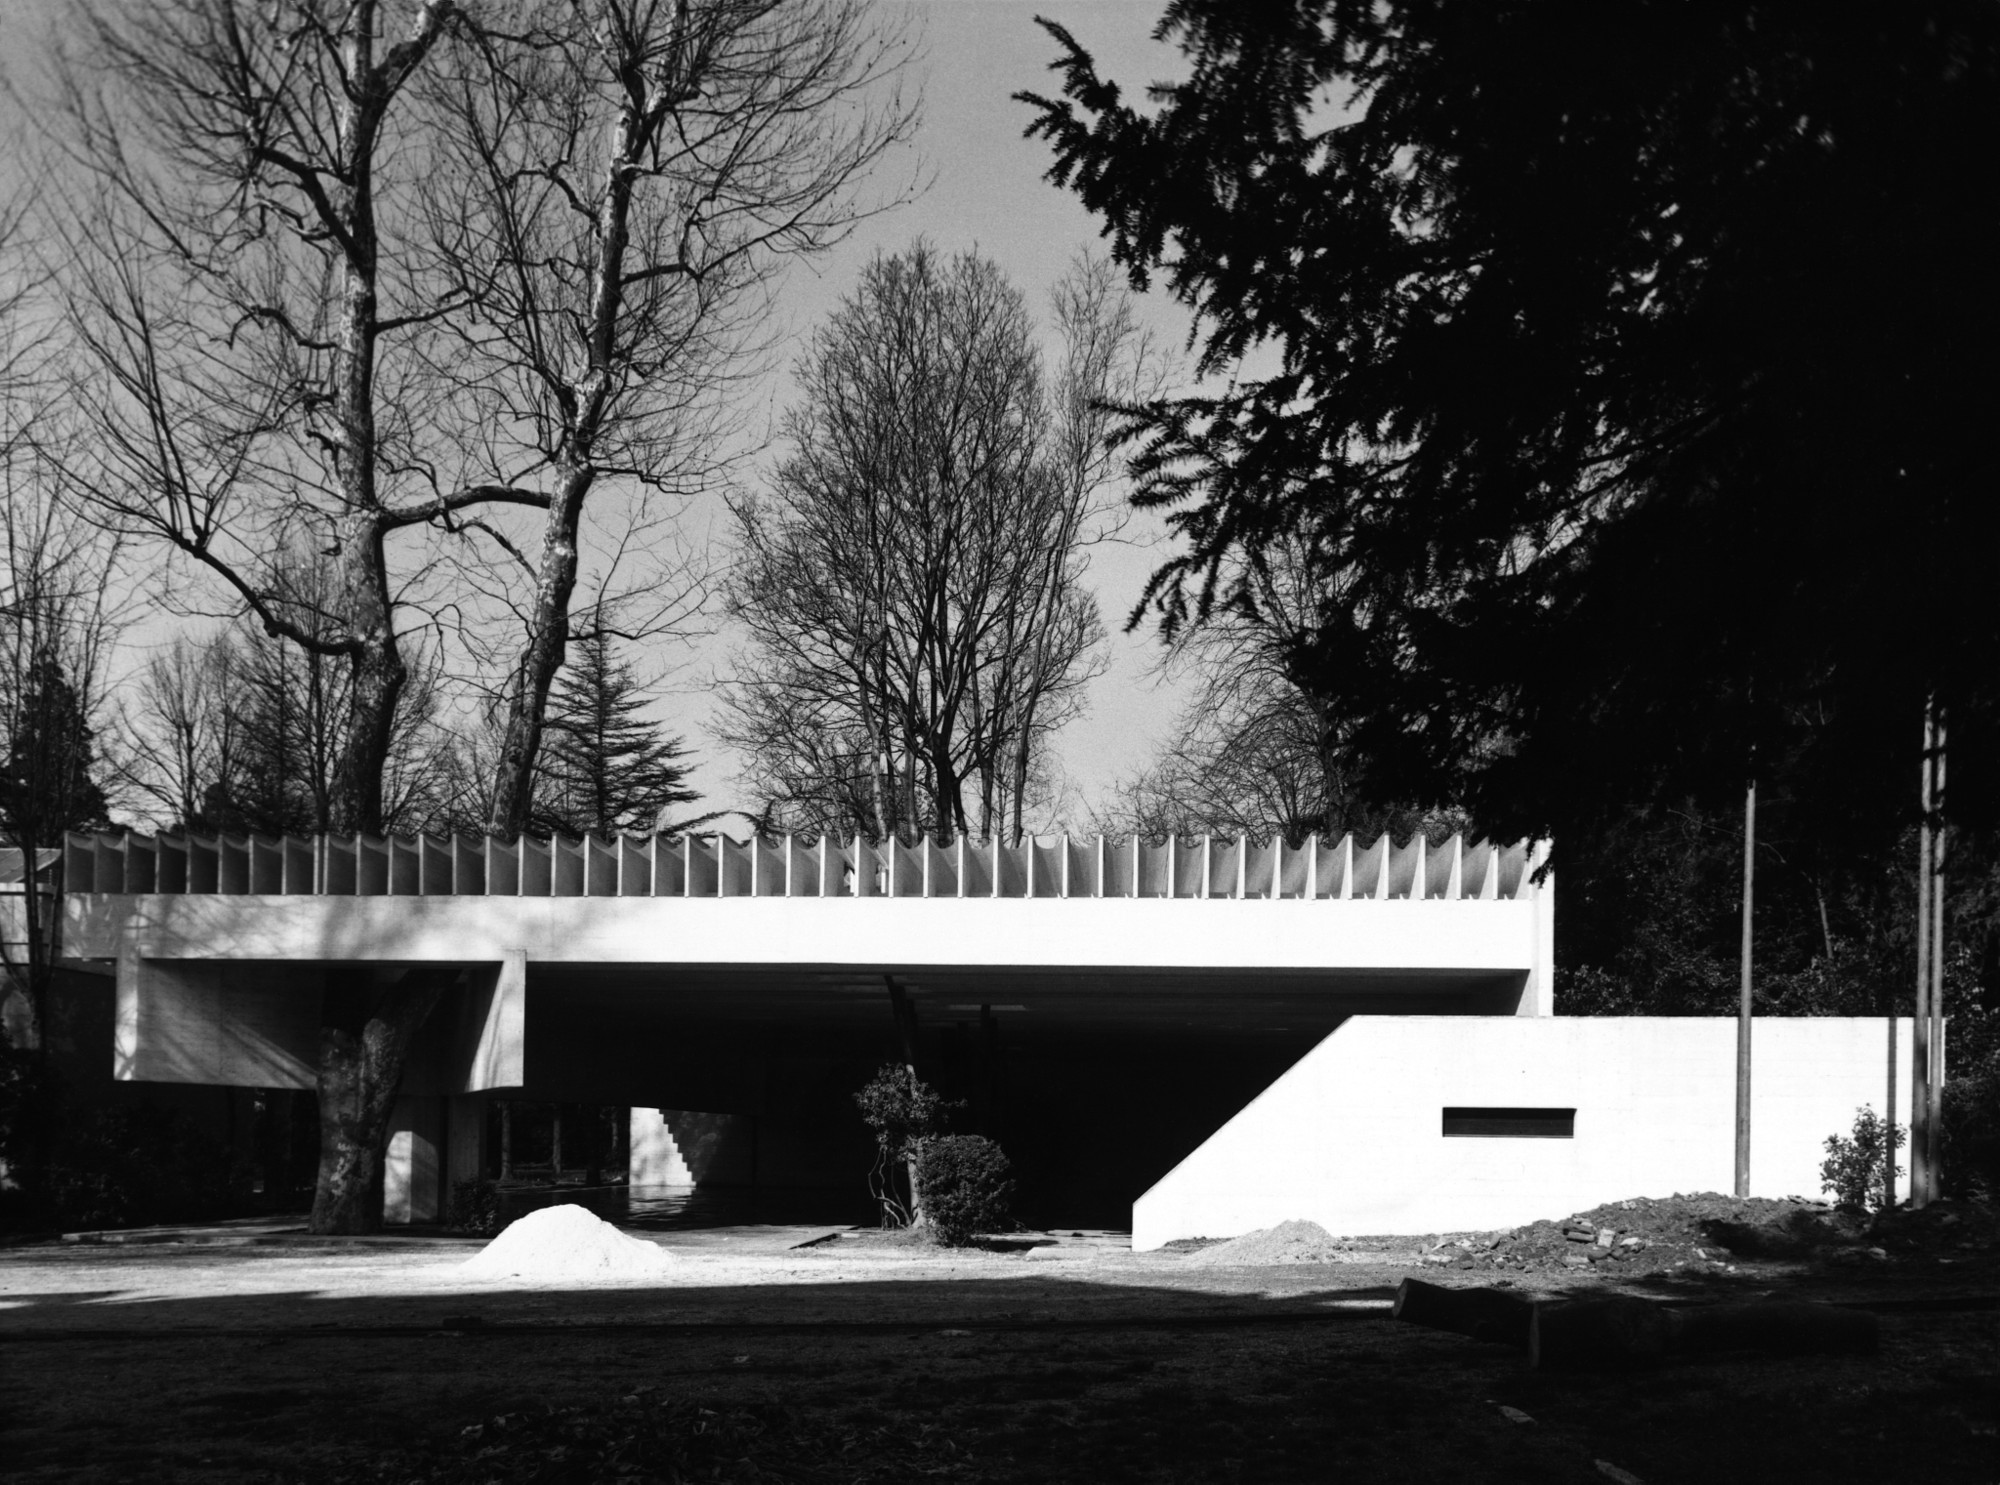 Sverre Fehn's Drawings for Venice's Nordic Pavilion To Be Exhibited in Oslo, © Ferruzzi